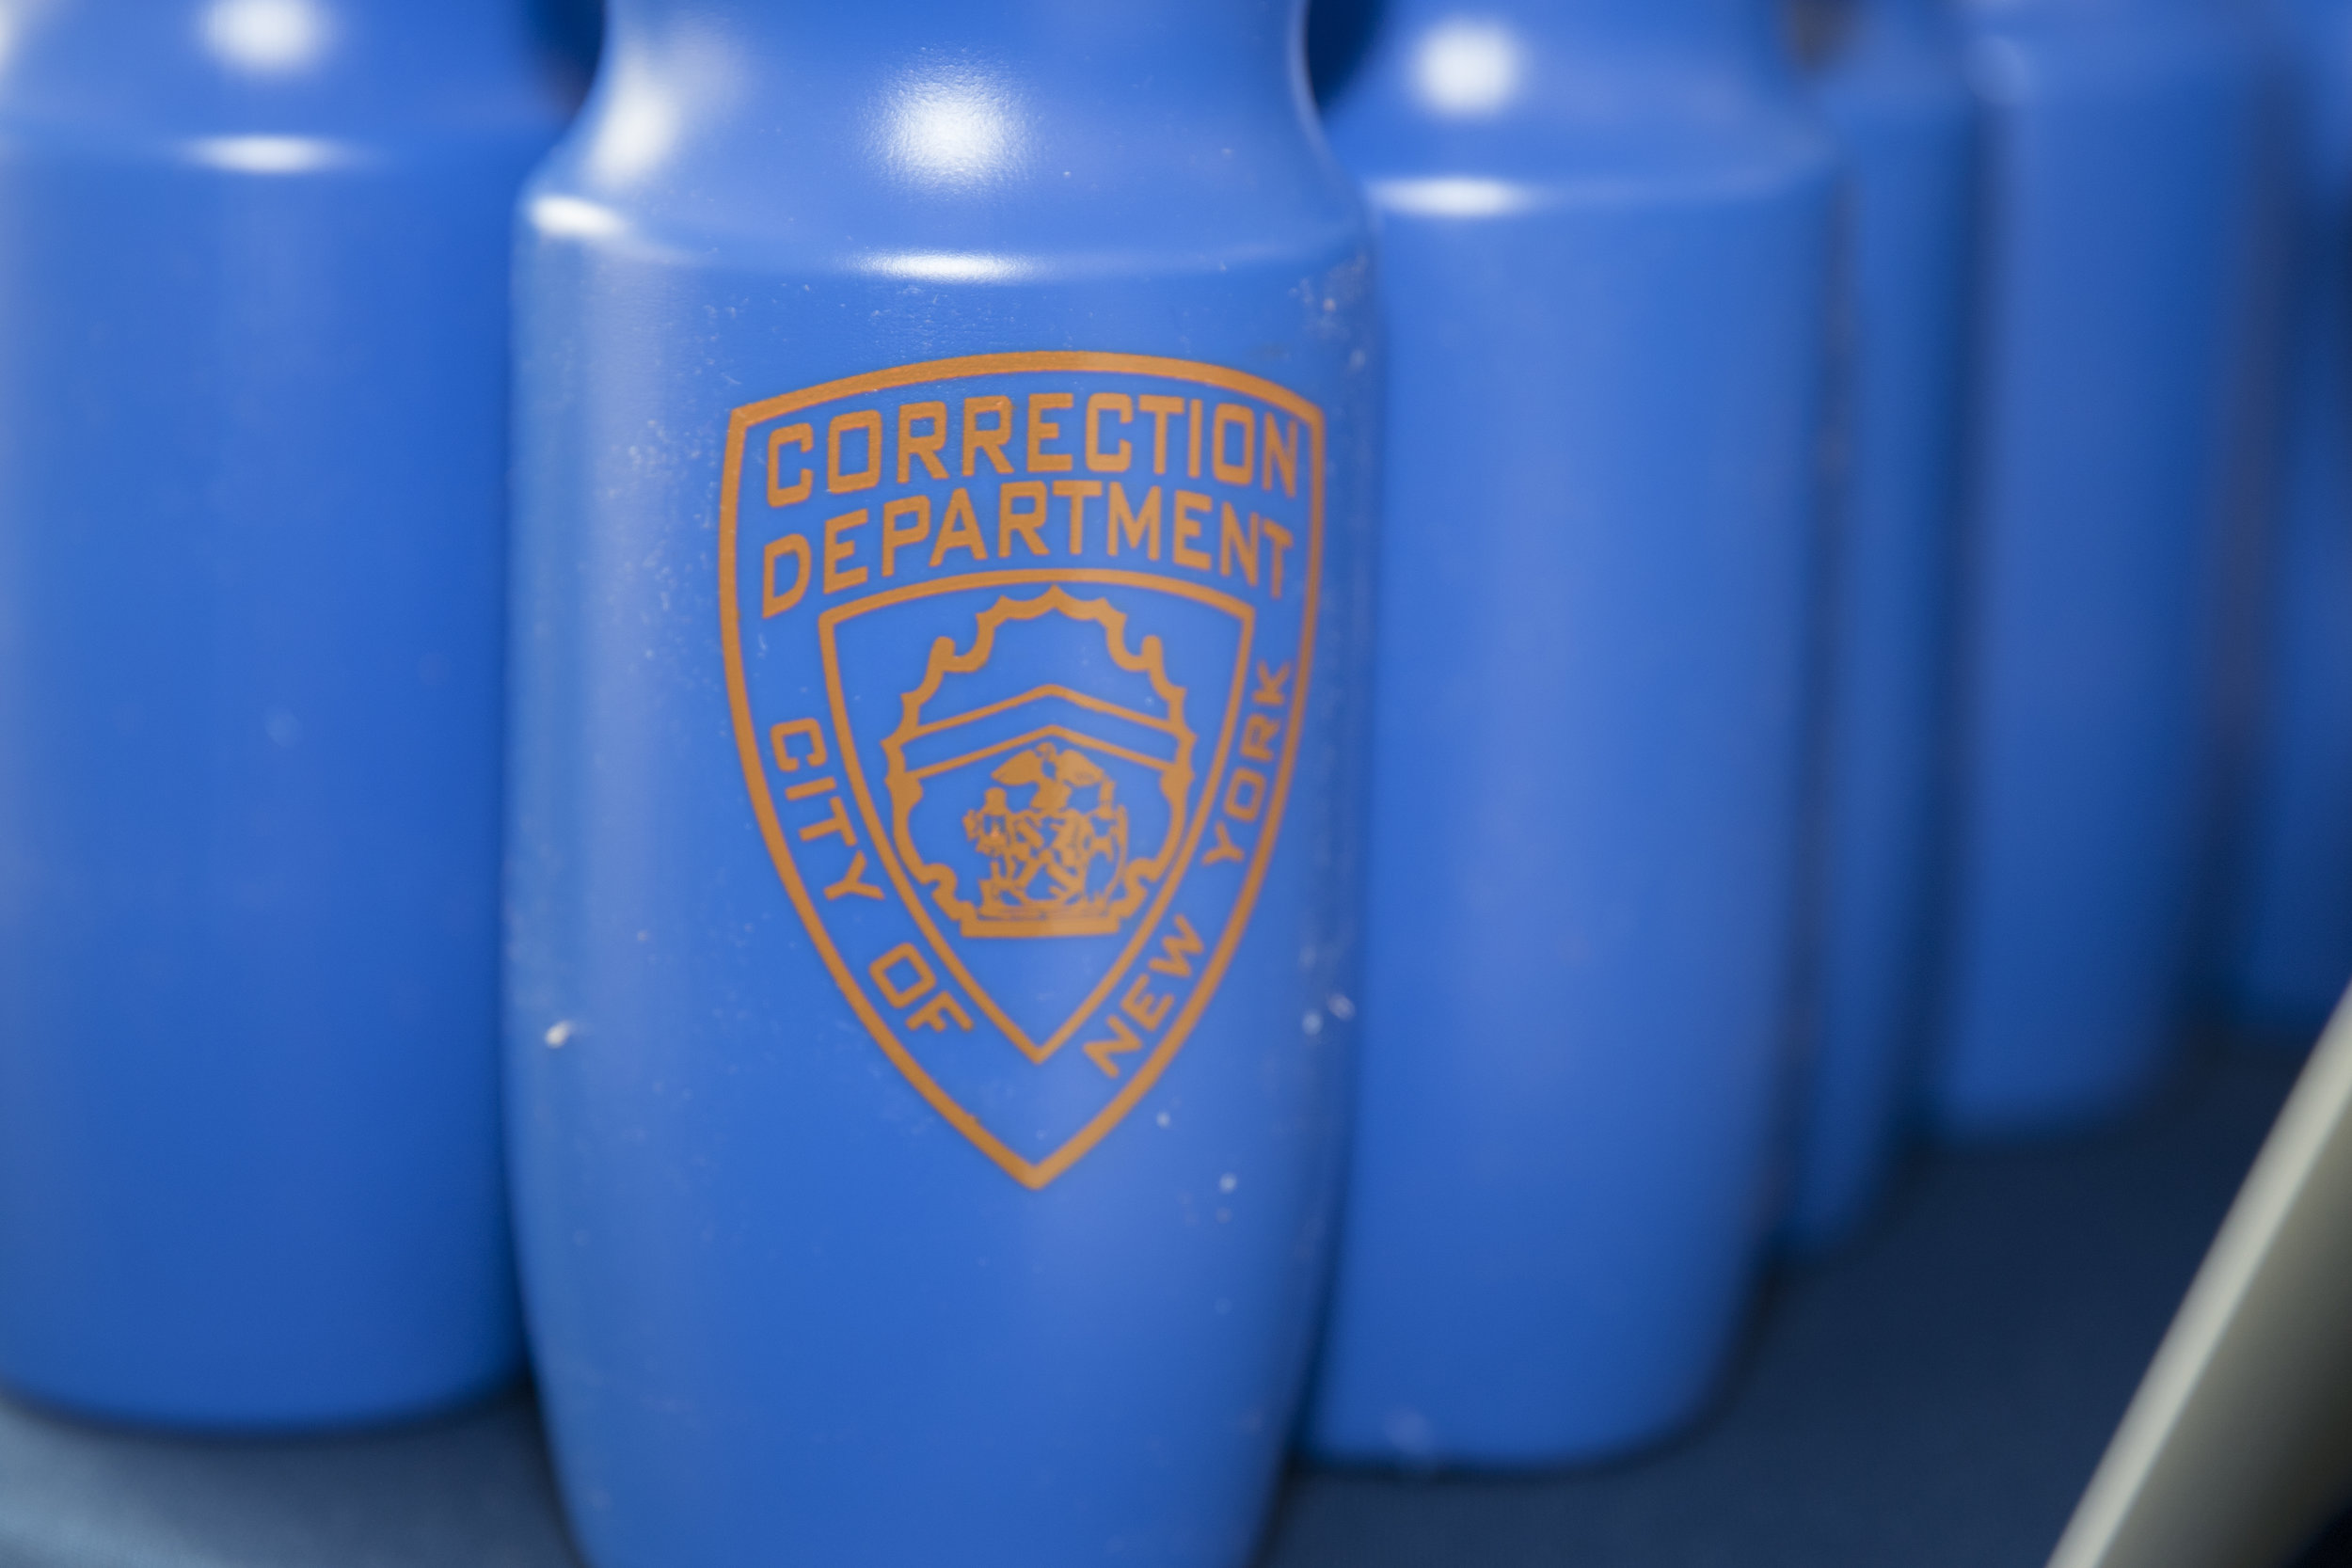 City of New York Correction Department water bottles